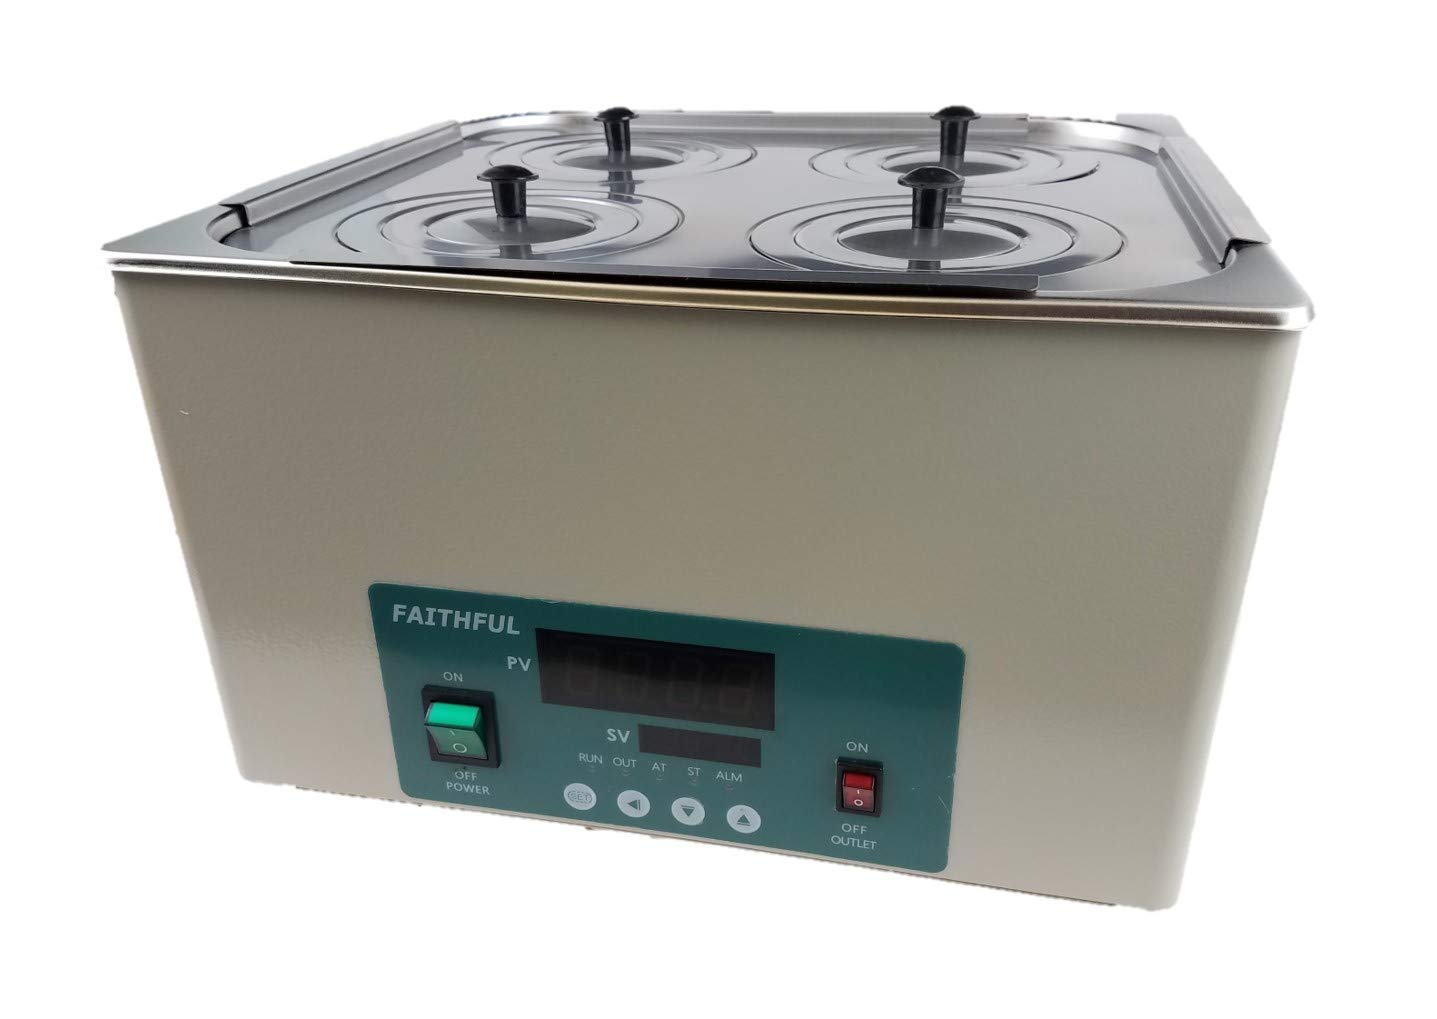 Digital Thermostatic Water Bath, 1 Chamber with 4 Openings, 12 L Capacity, 110V